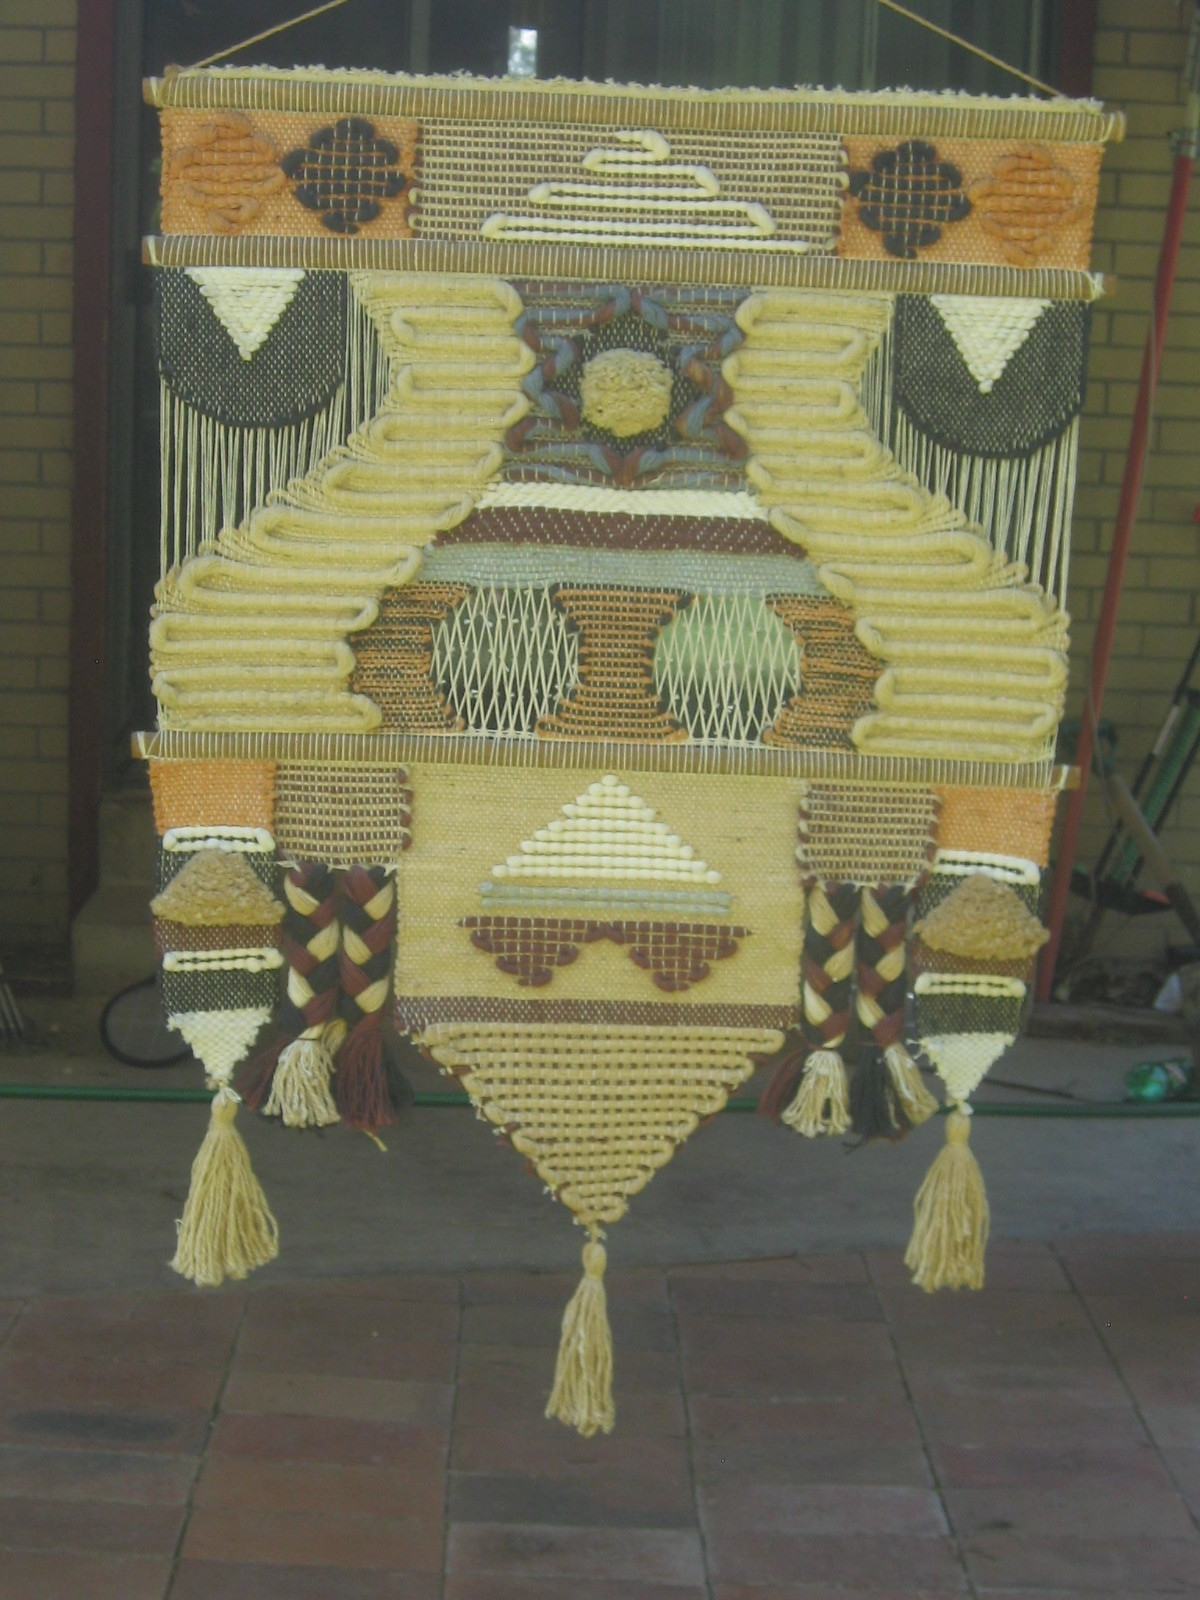 Vintage Macrame Woven Textile Wall Art Objects Pinterest - Super Tech for Most Up-to-Date Vintage Textile Wall Art